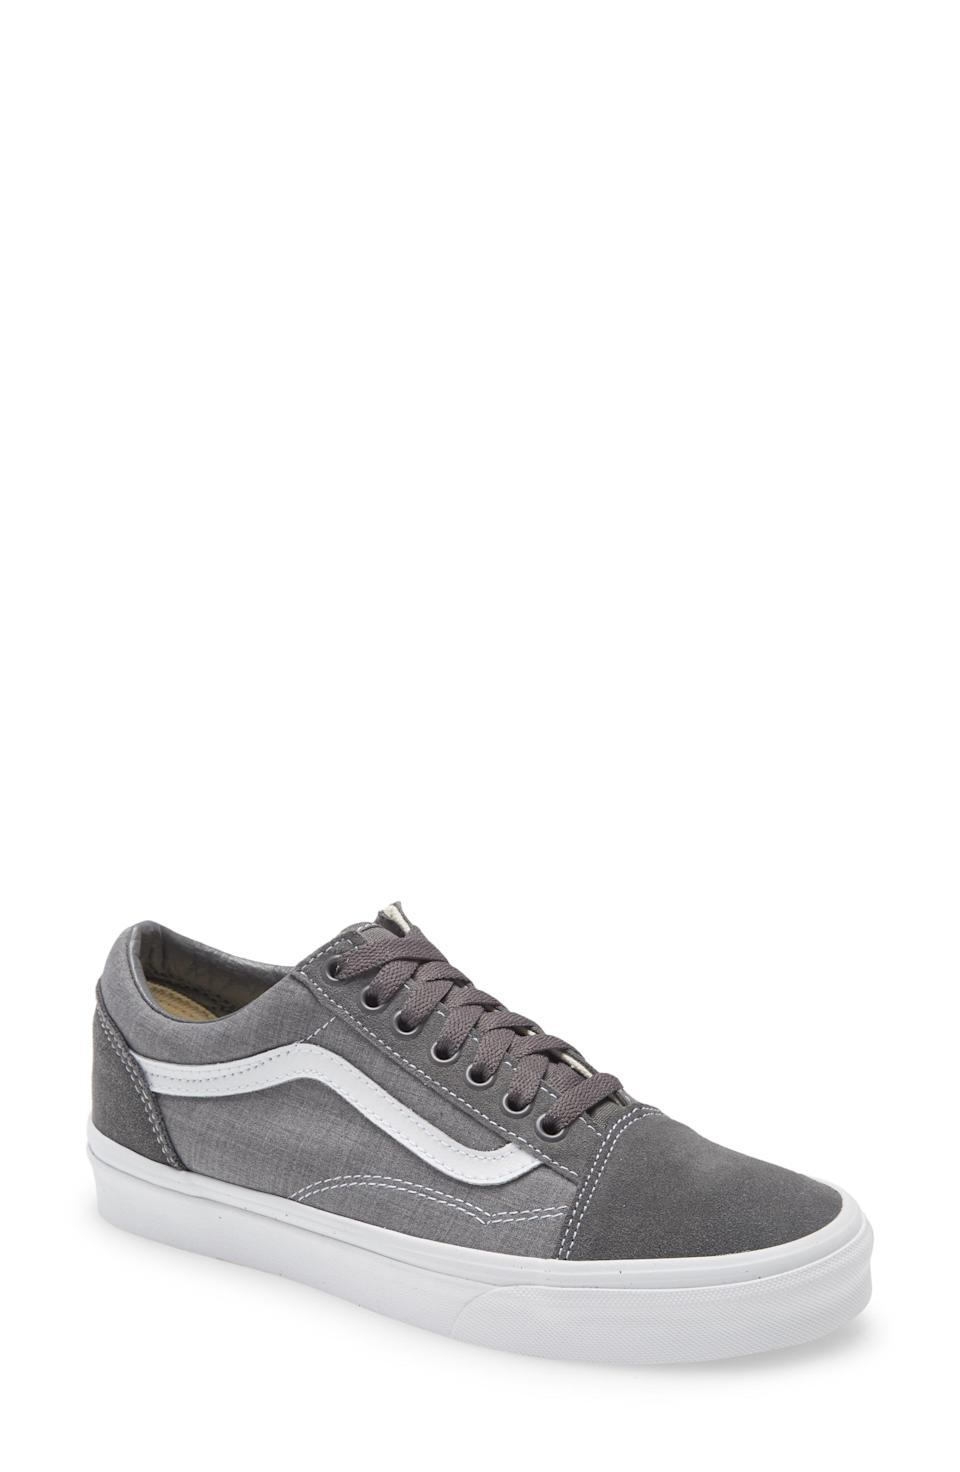 """<p><strong>Vans</strong></p><p>nordstrom.com</p><p><strong>$42.90</strong></p><p><a href=""""https://go.redirectingat.com?id=74968X1596630&url=https%3A%2F%2Fwww.nordstrom.com%2Fs%2Fvans-old-skool-sneaker-unisex%2F5885333&sref=https%3A%2F%2Fwww.menshealth.com%2Fstyle%2Fg37081969%2Fnordstroms-anniversary-sale-best-sneakers%2F"""" rel=""""nofollow noopener"""" target=""""_blank"""" data-ylk=""""slk:BUY IT HERE"""" class=""""link rapid-noclick-resp"""">BUY IT HERE</a></p><p><del>$65</del><strong><br>$42.90</strong></p><p>Embrace your inner skater with a classic style from Vans. Simply put, these are effortlessly cool and timeless.</p>"""